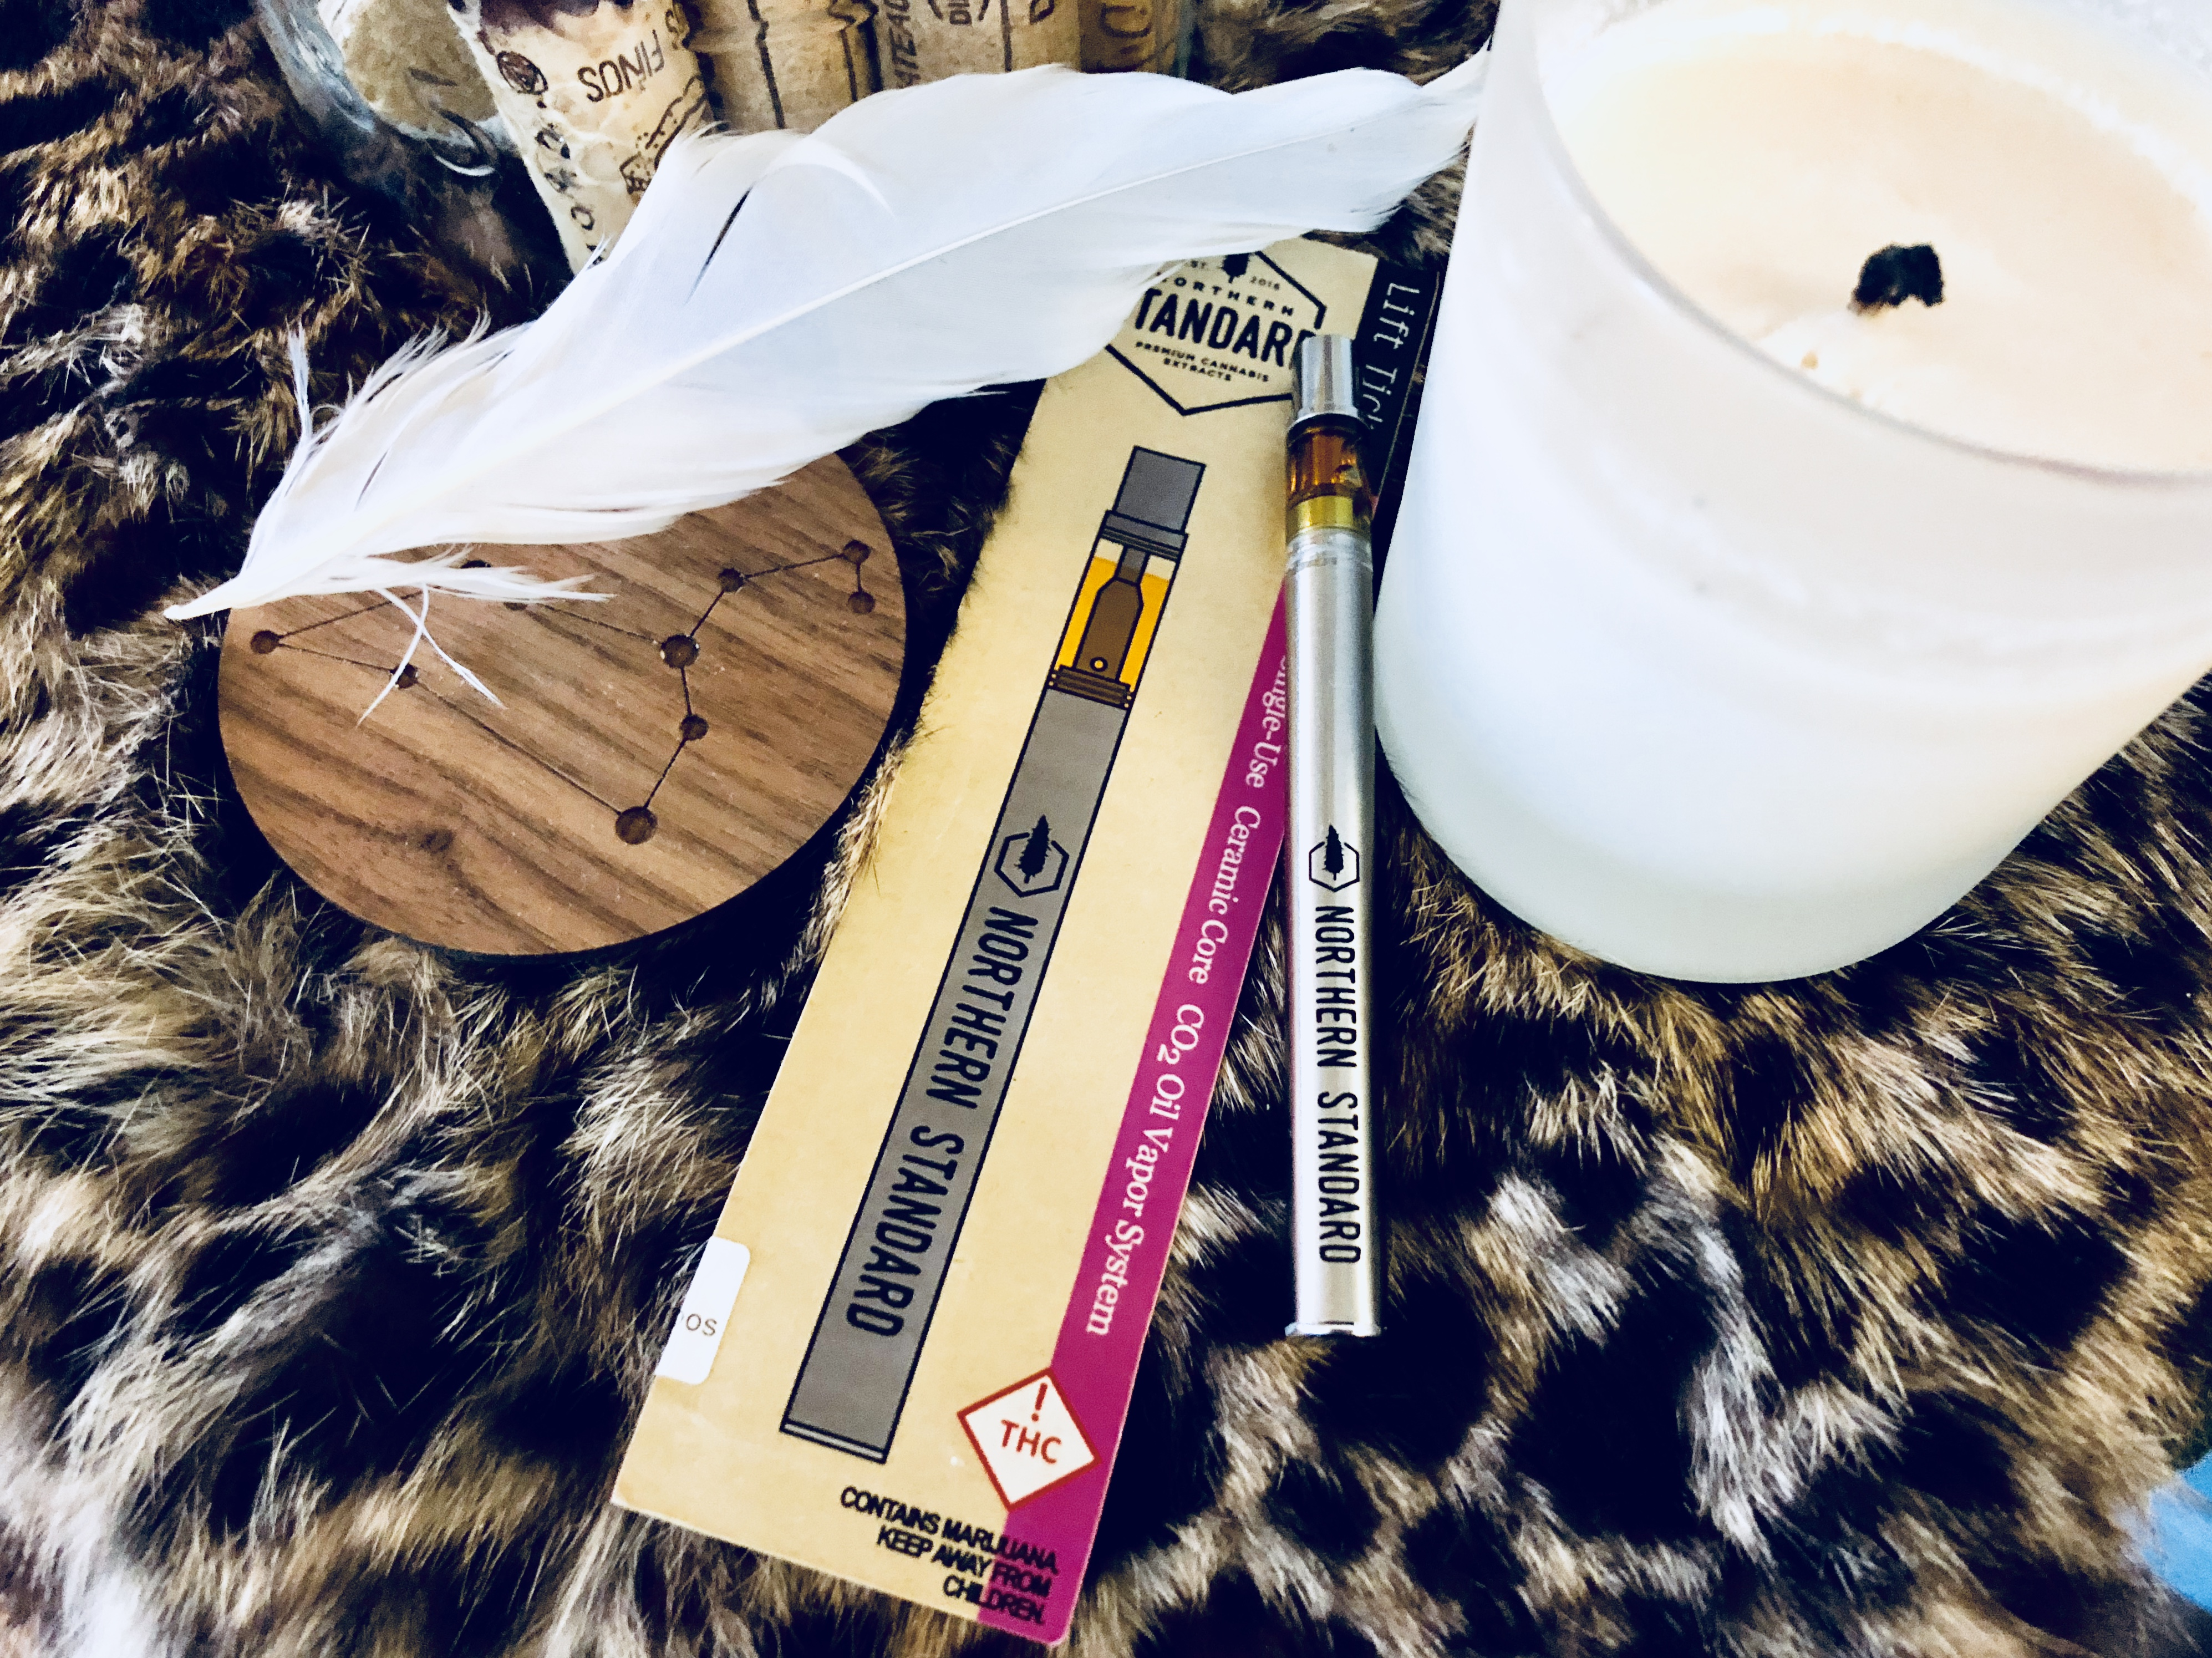 Review: CBD/THC Vape Pen